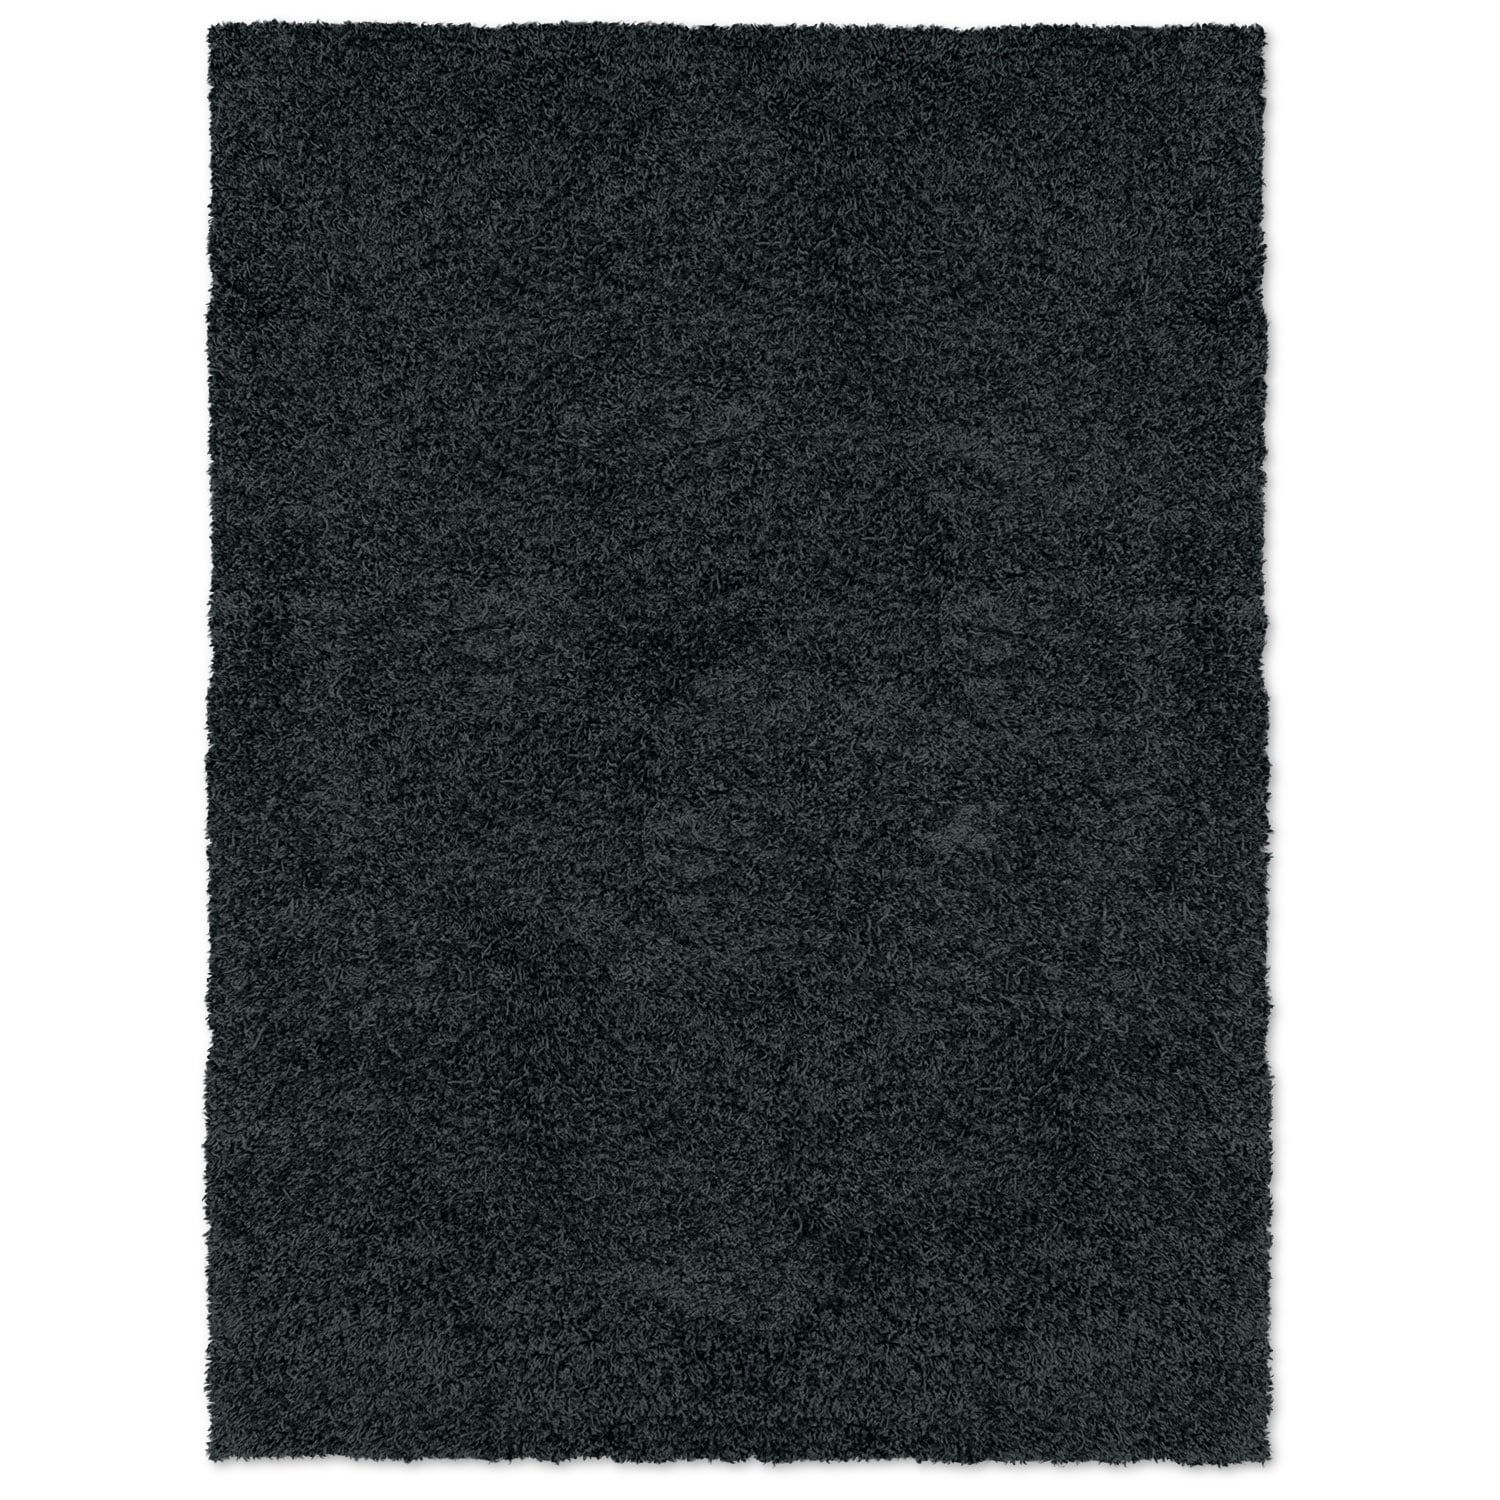 Domino Black Shag Area Rug (8' x 10')